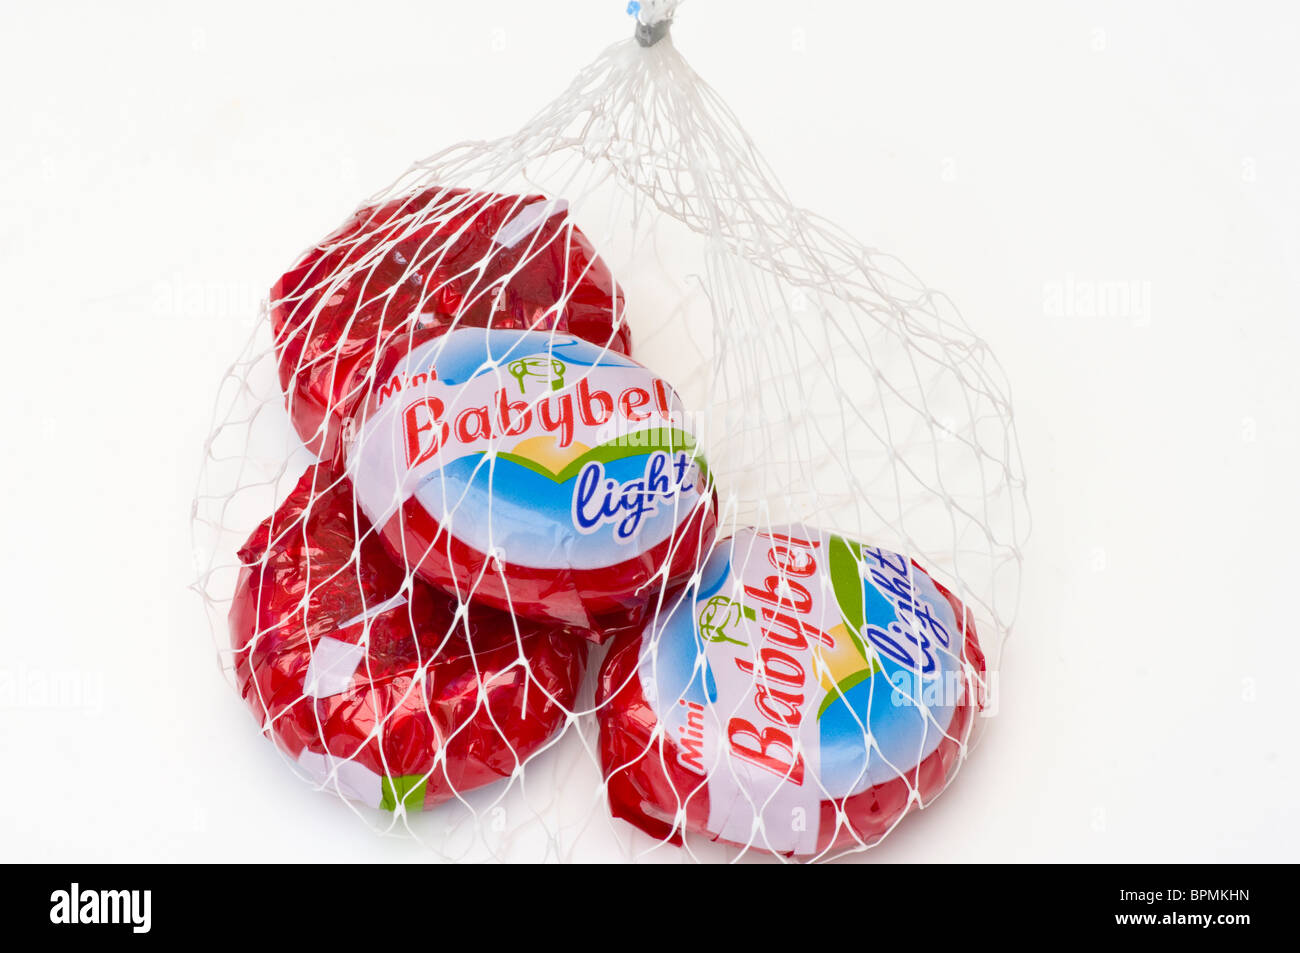 Mini Babybel Light Cheese